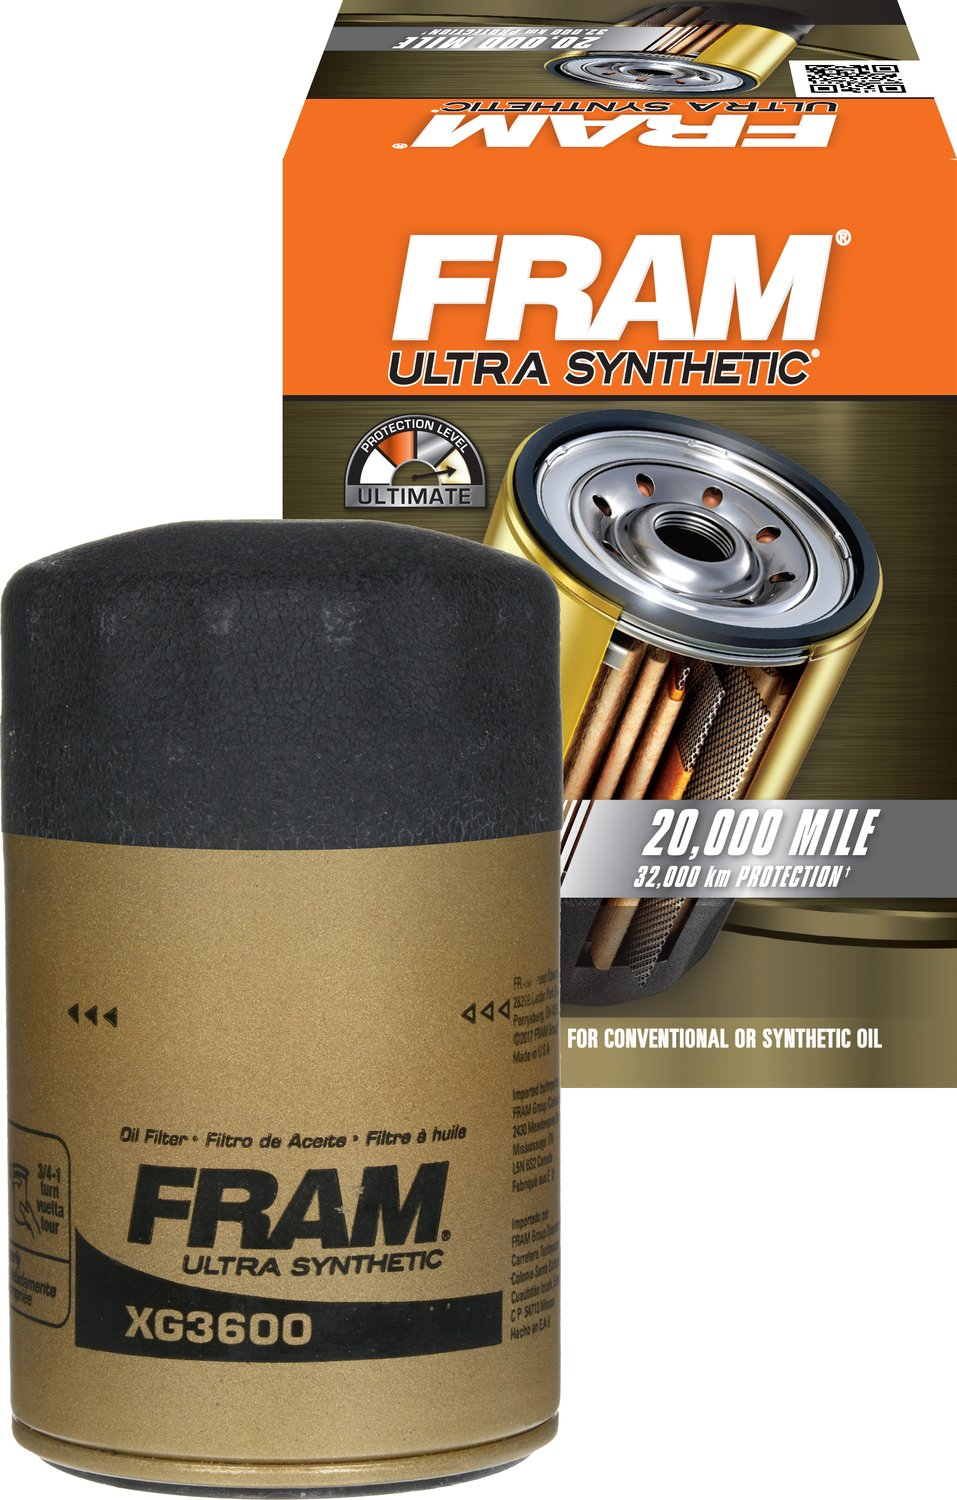 FRAM XG3600 Ultra Synthetic Spin-On Oil Filter with Sure Grip rm-FTA-XG3600